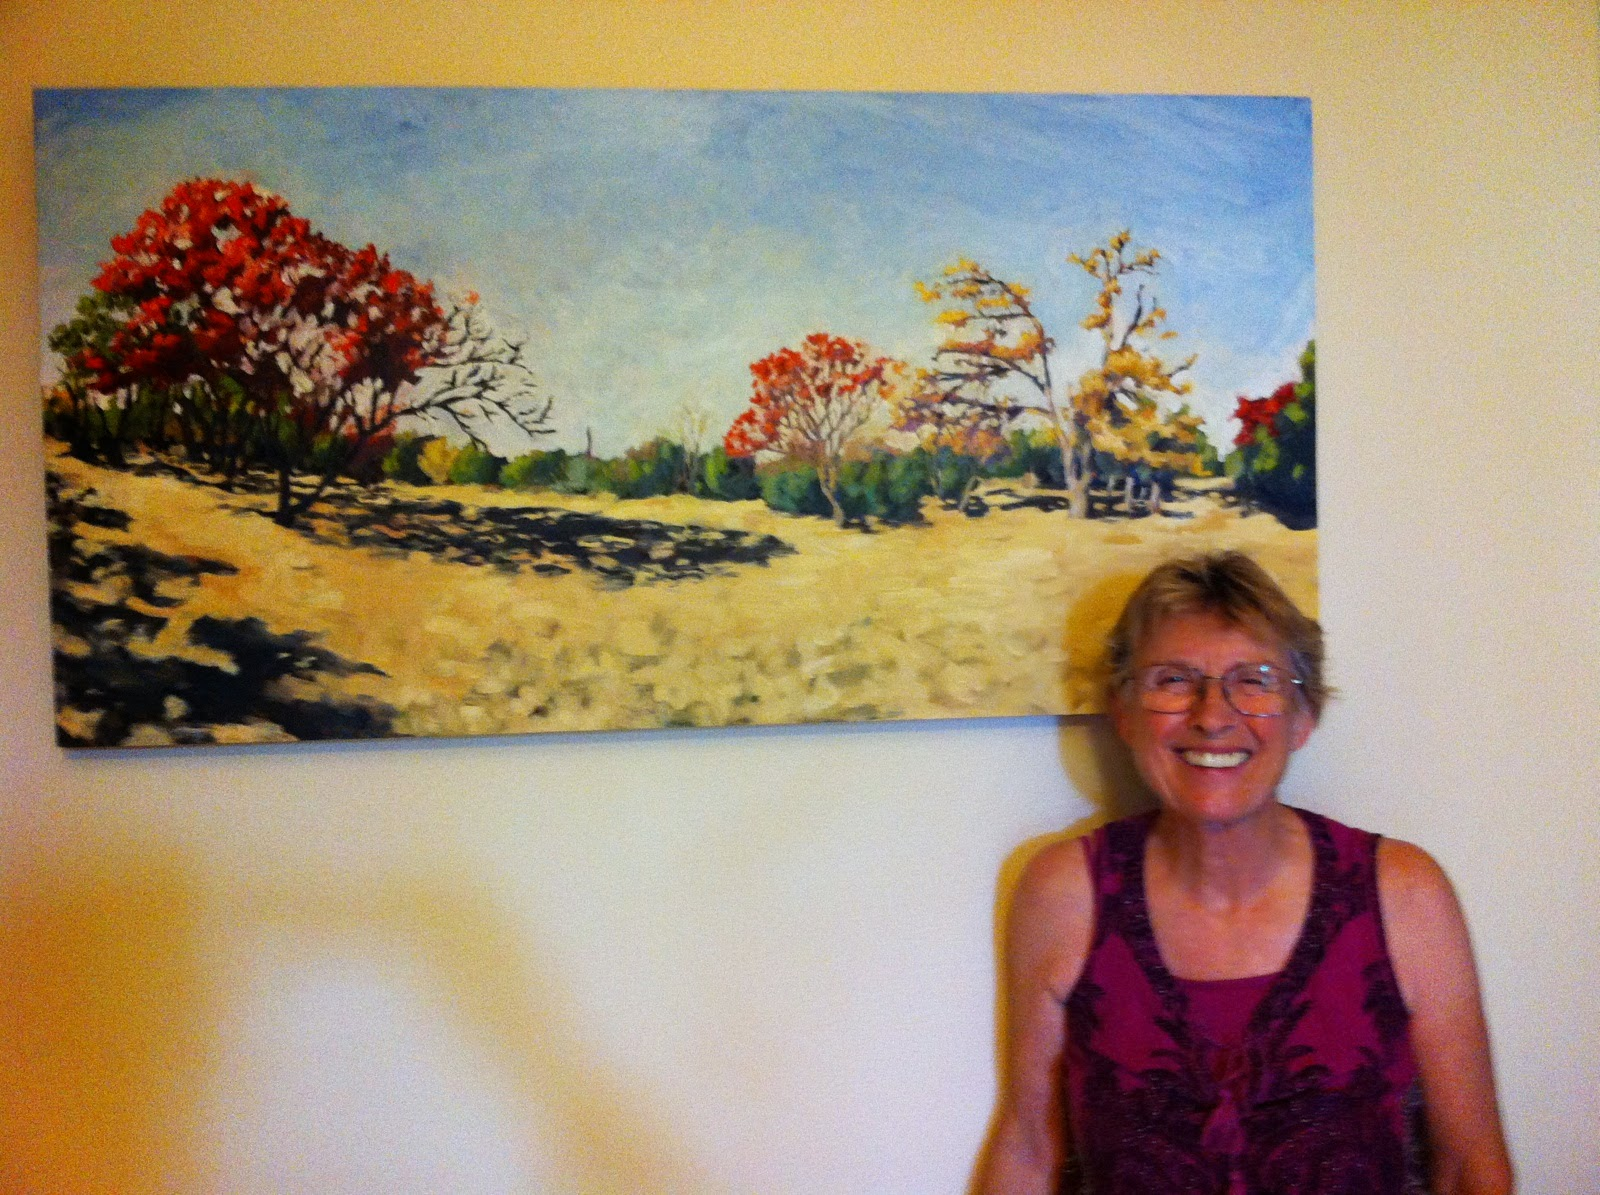 landscape painting by David Borden with the proud owner